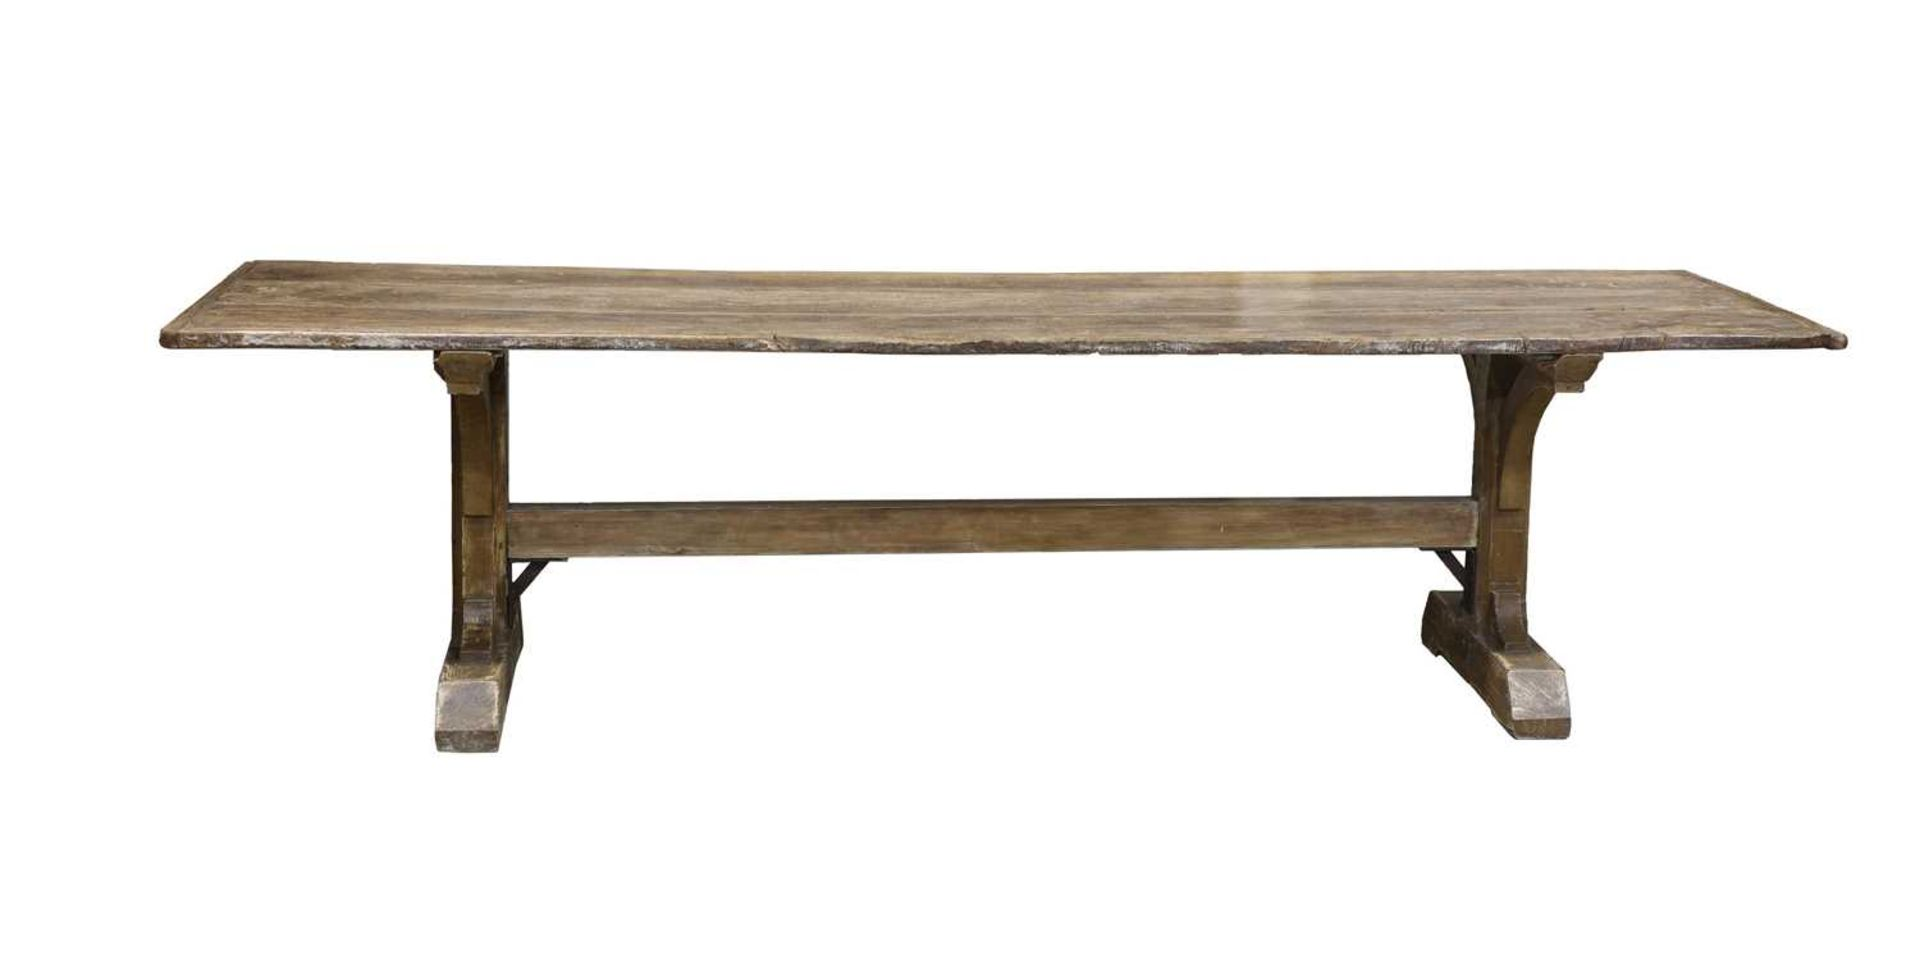 An elm and pine refectory table, - Image 2 of 3